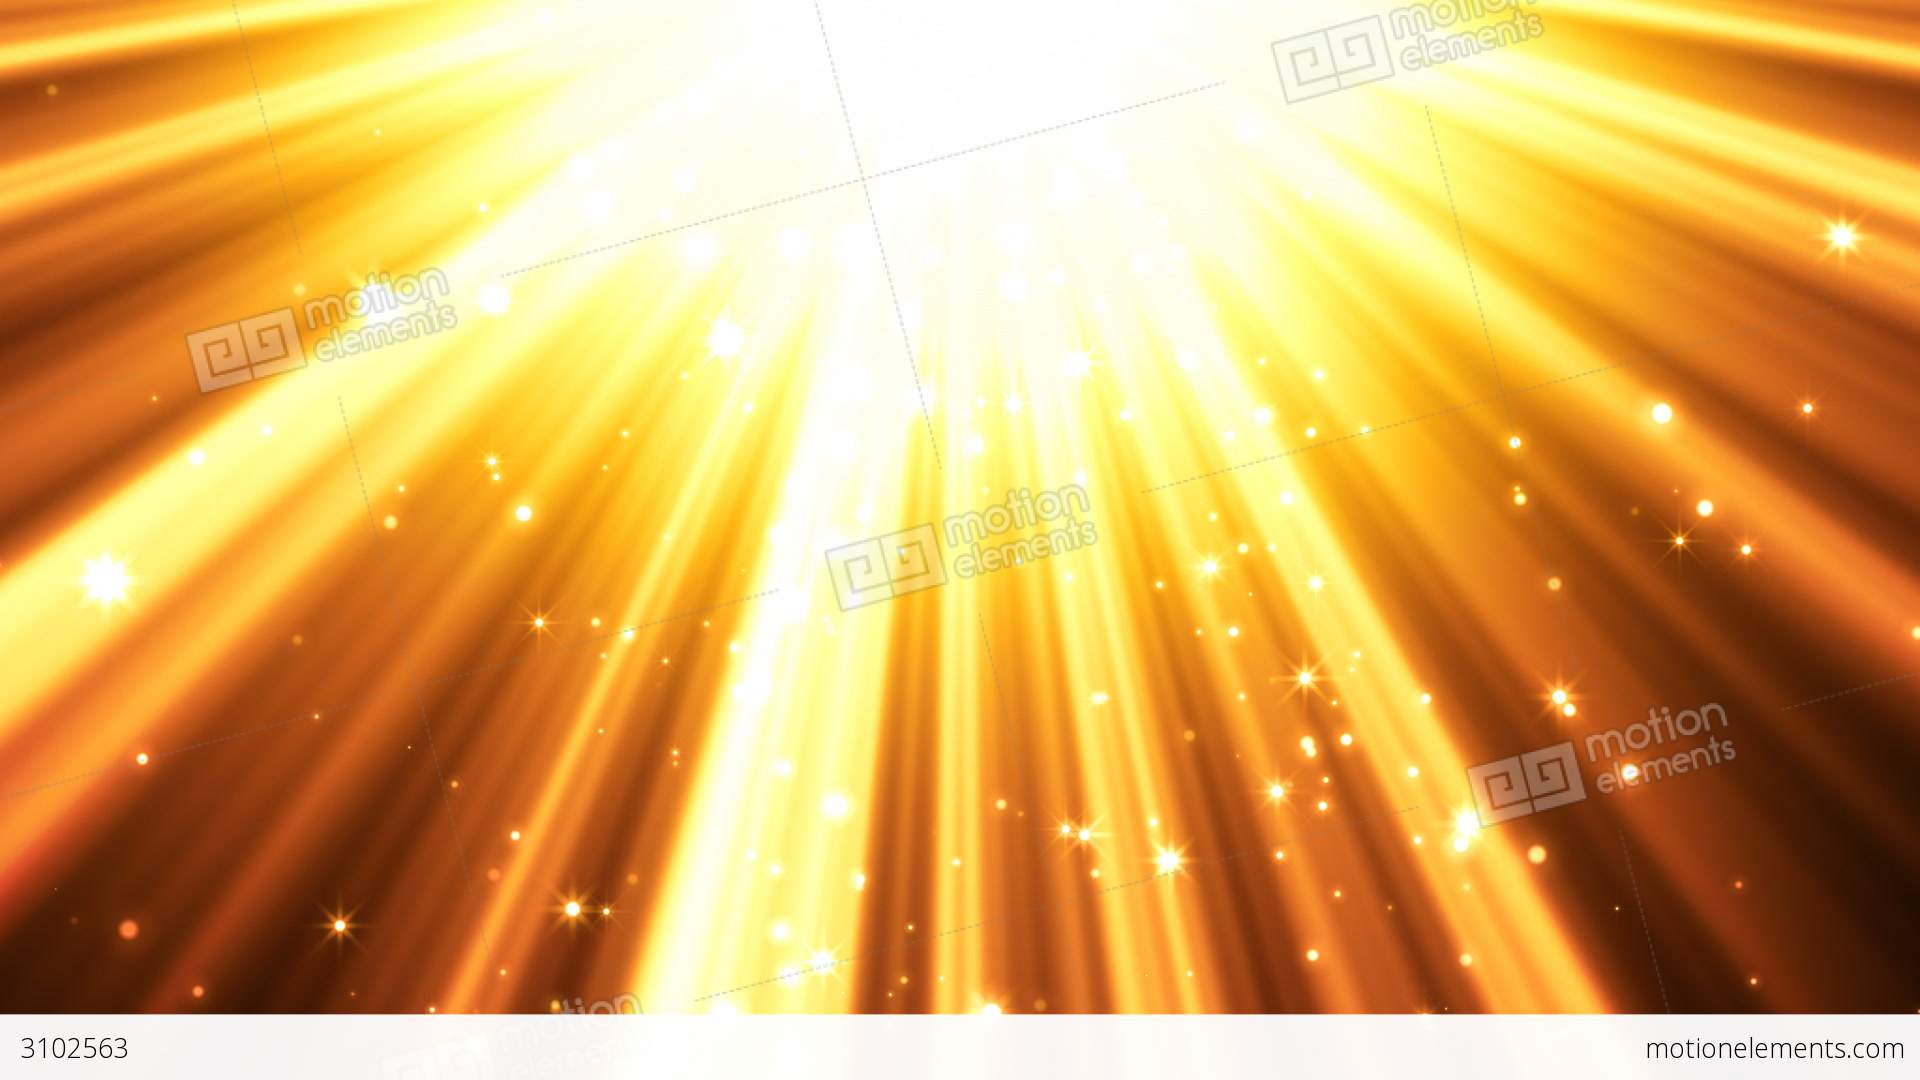 Cute Piano Wallpaper Golden Light Rays Background Stock Animation 3102563